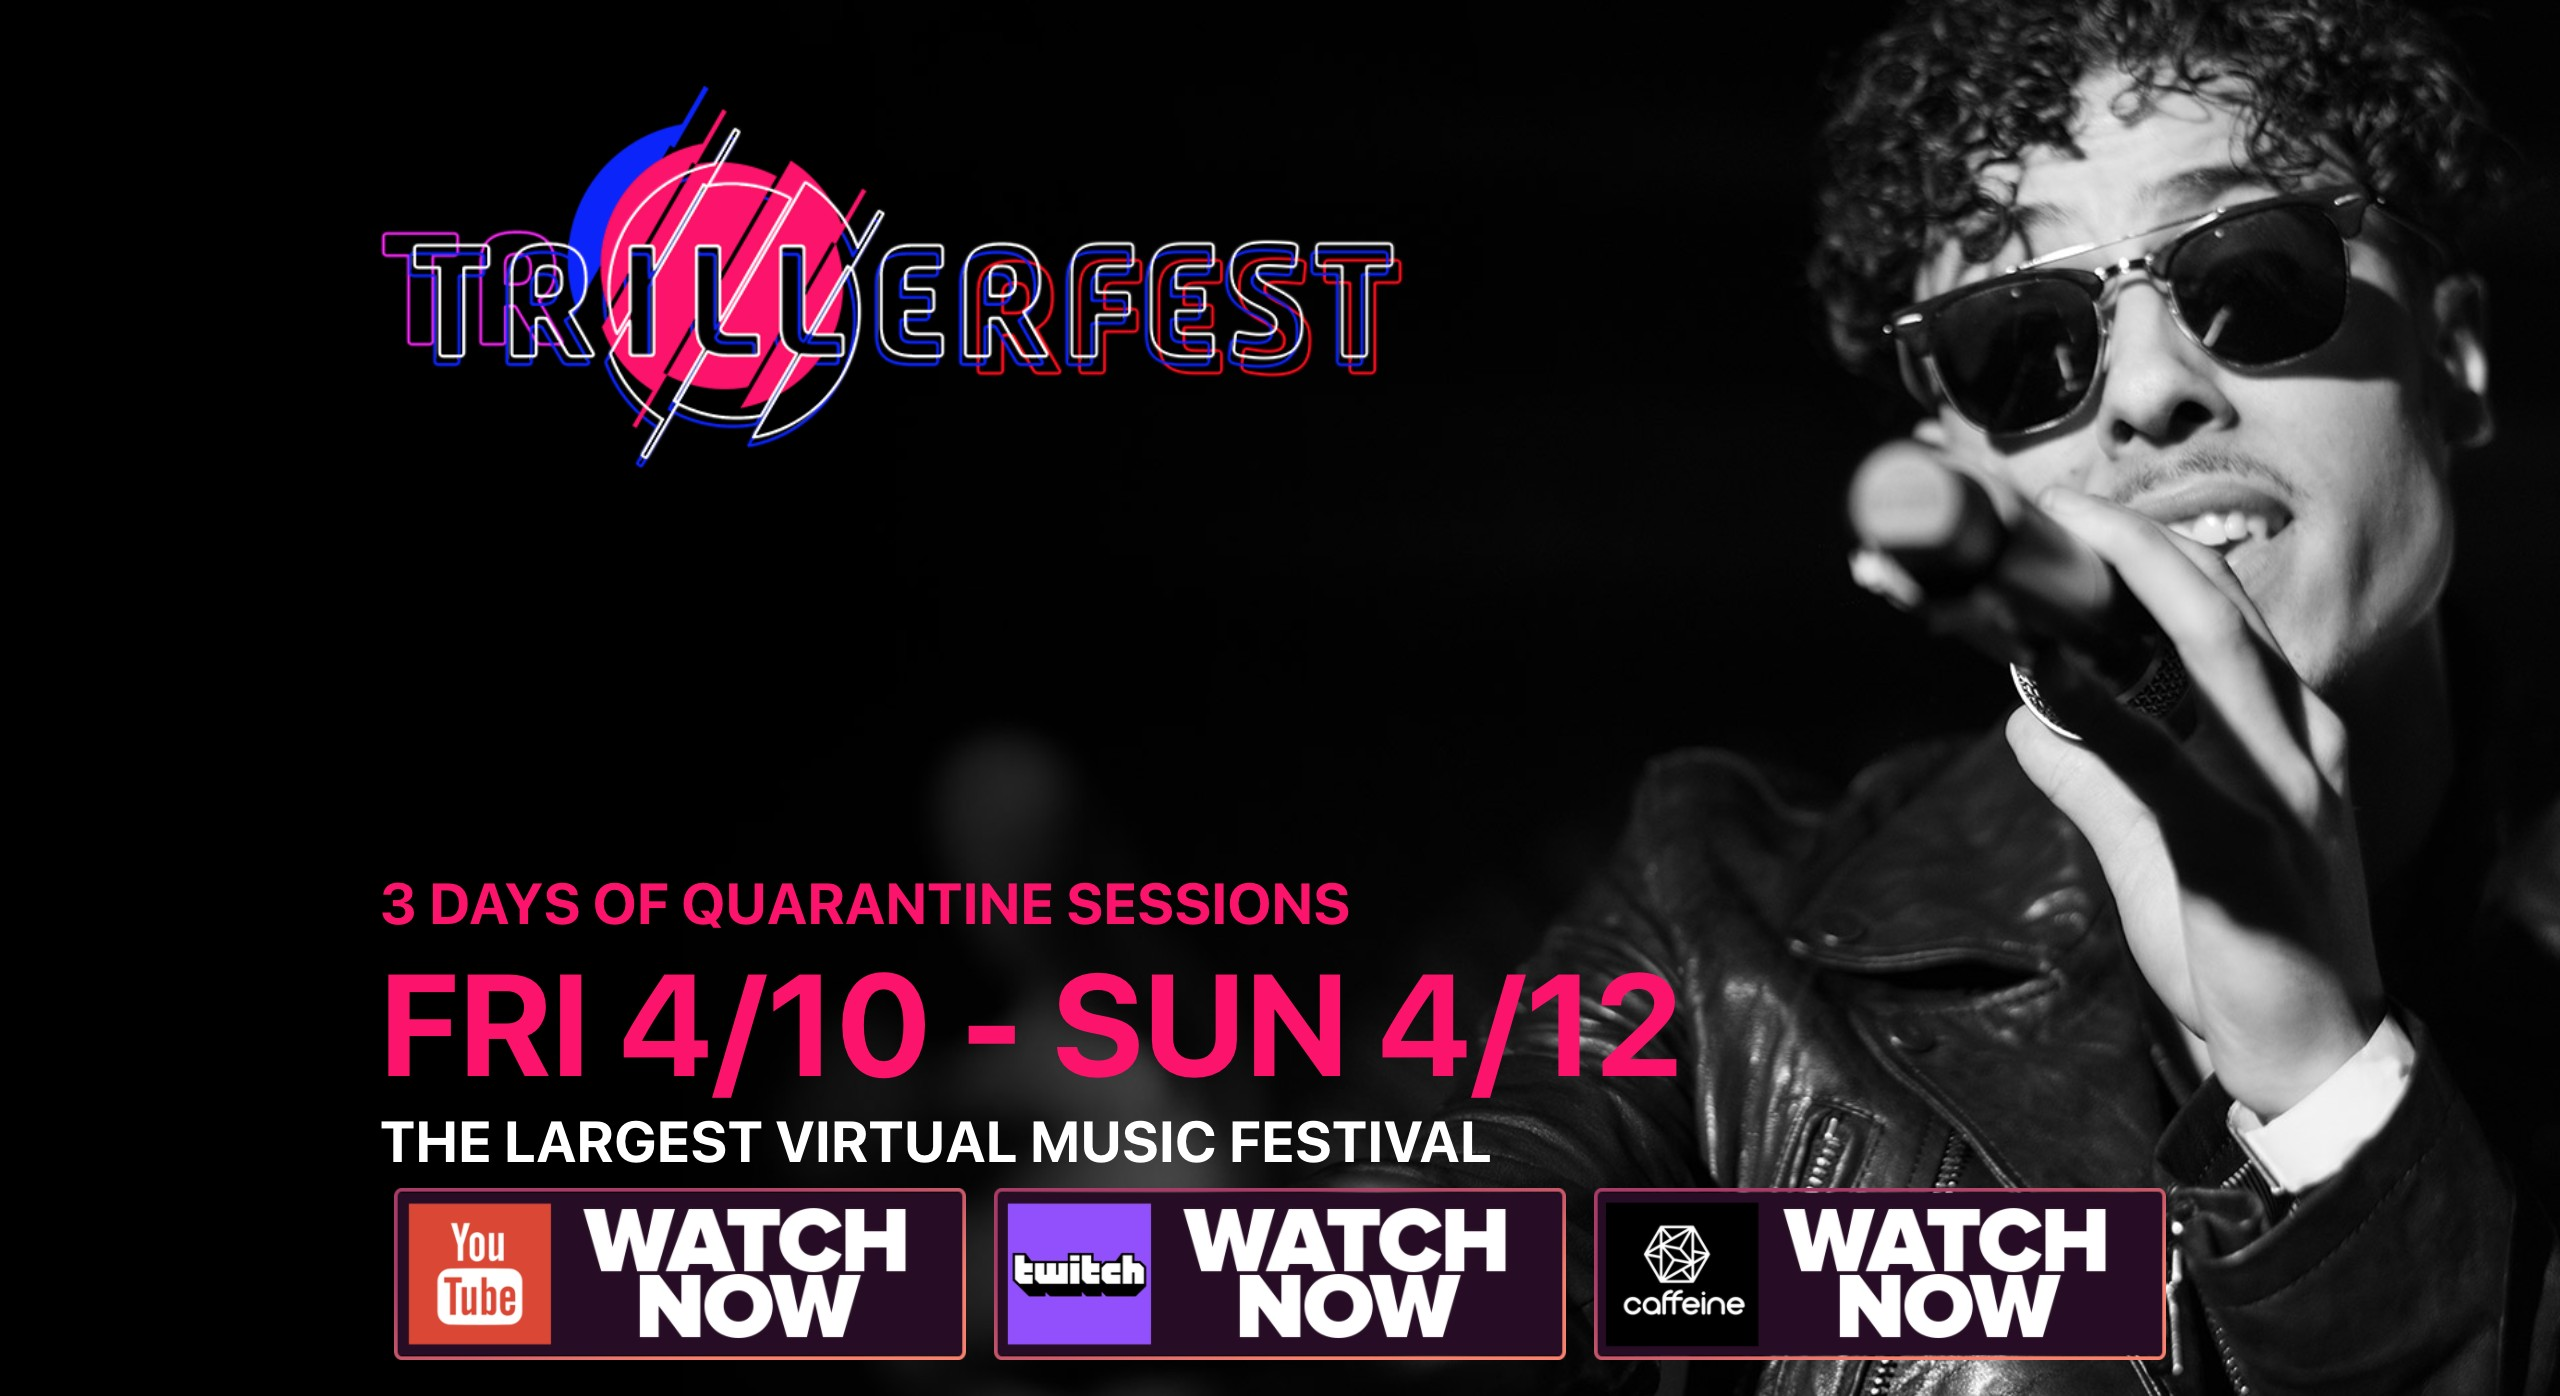 Trillerfest -  the largest virtual music festival